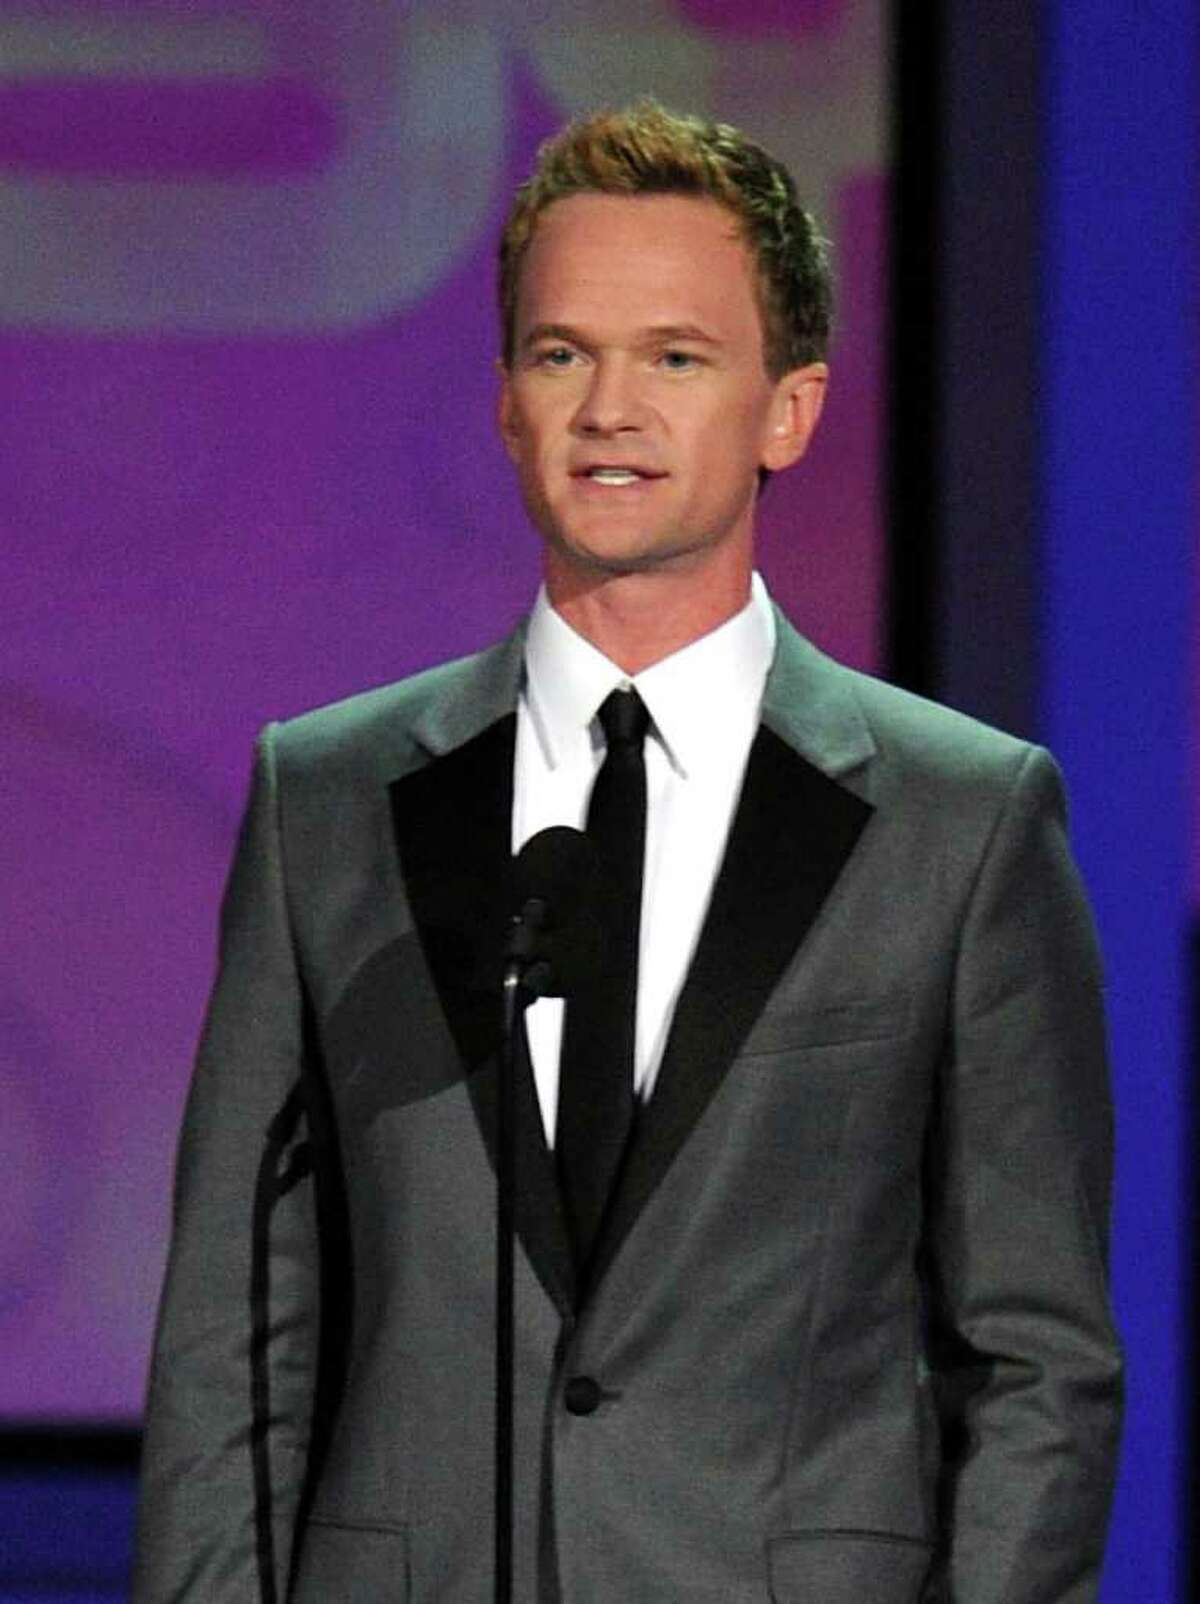 LOS ANGELES, CA - AUGUST 29: Actor Neil Patrick Harris speaks onstage at the 62nd Annual Primetime Emmy Awards held at the Nokia Theatre L.A. Live on August 29, 2010 in Los Angeles, California. (Photo by Kevin Winter/Getty Images) *** Local Caption *** Neil Patrick Harris